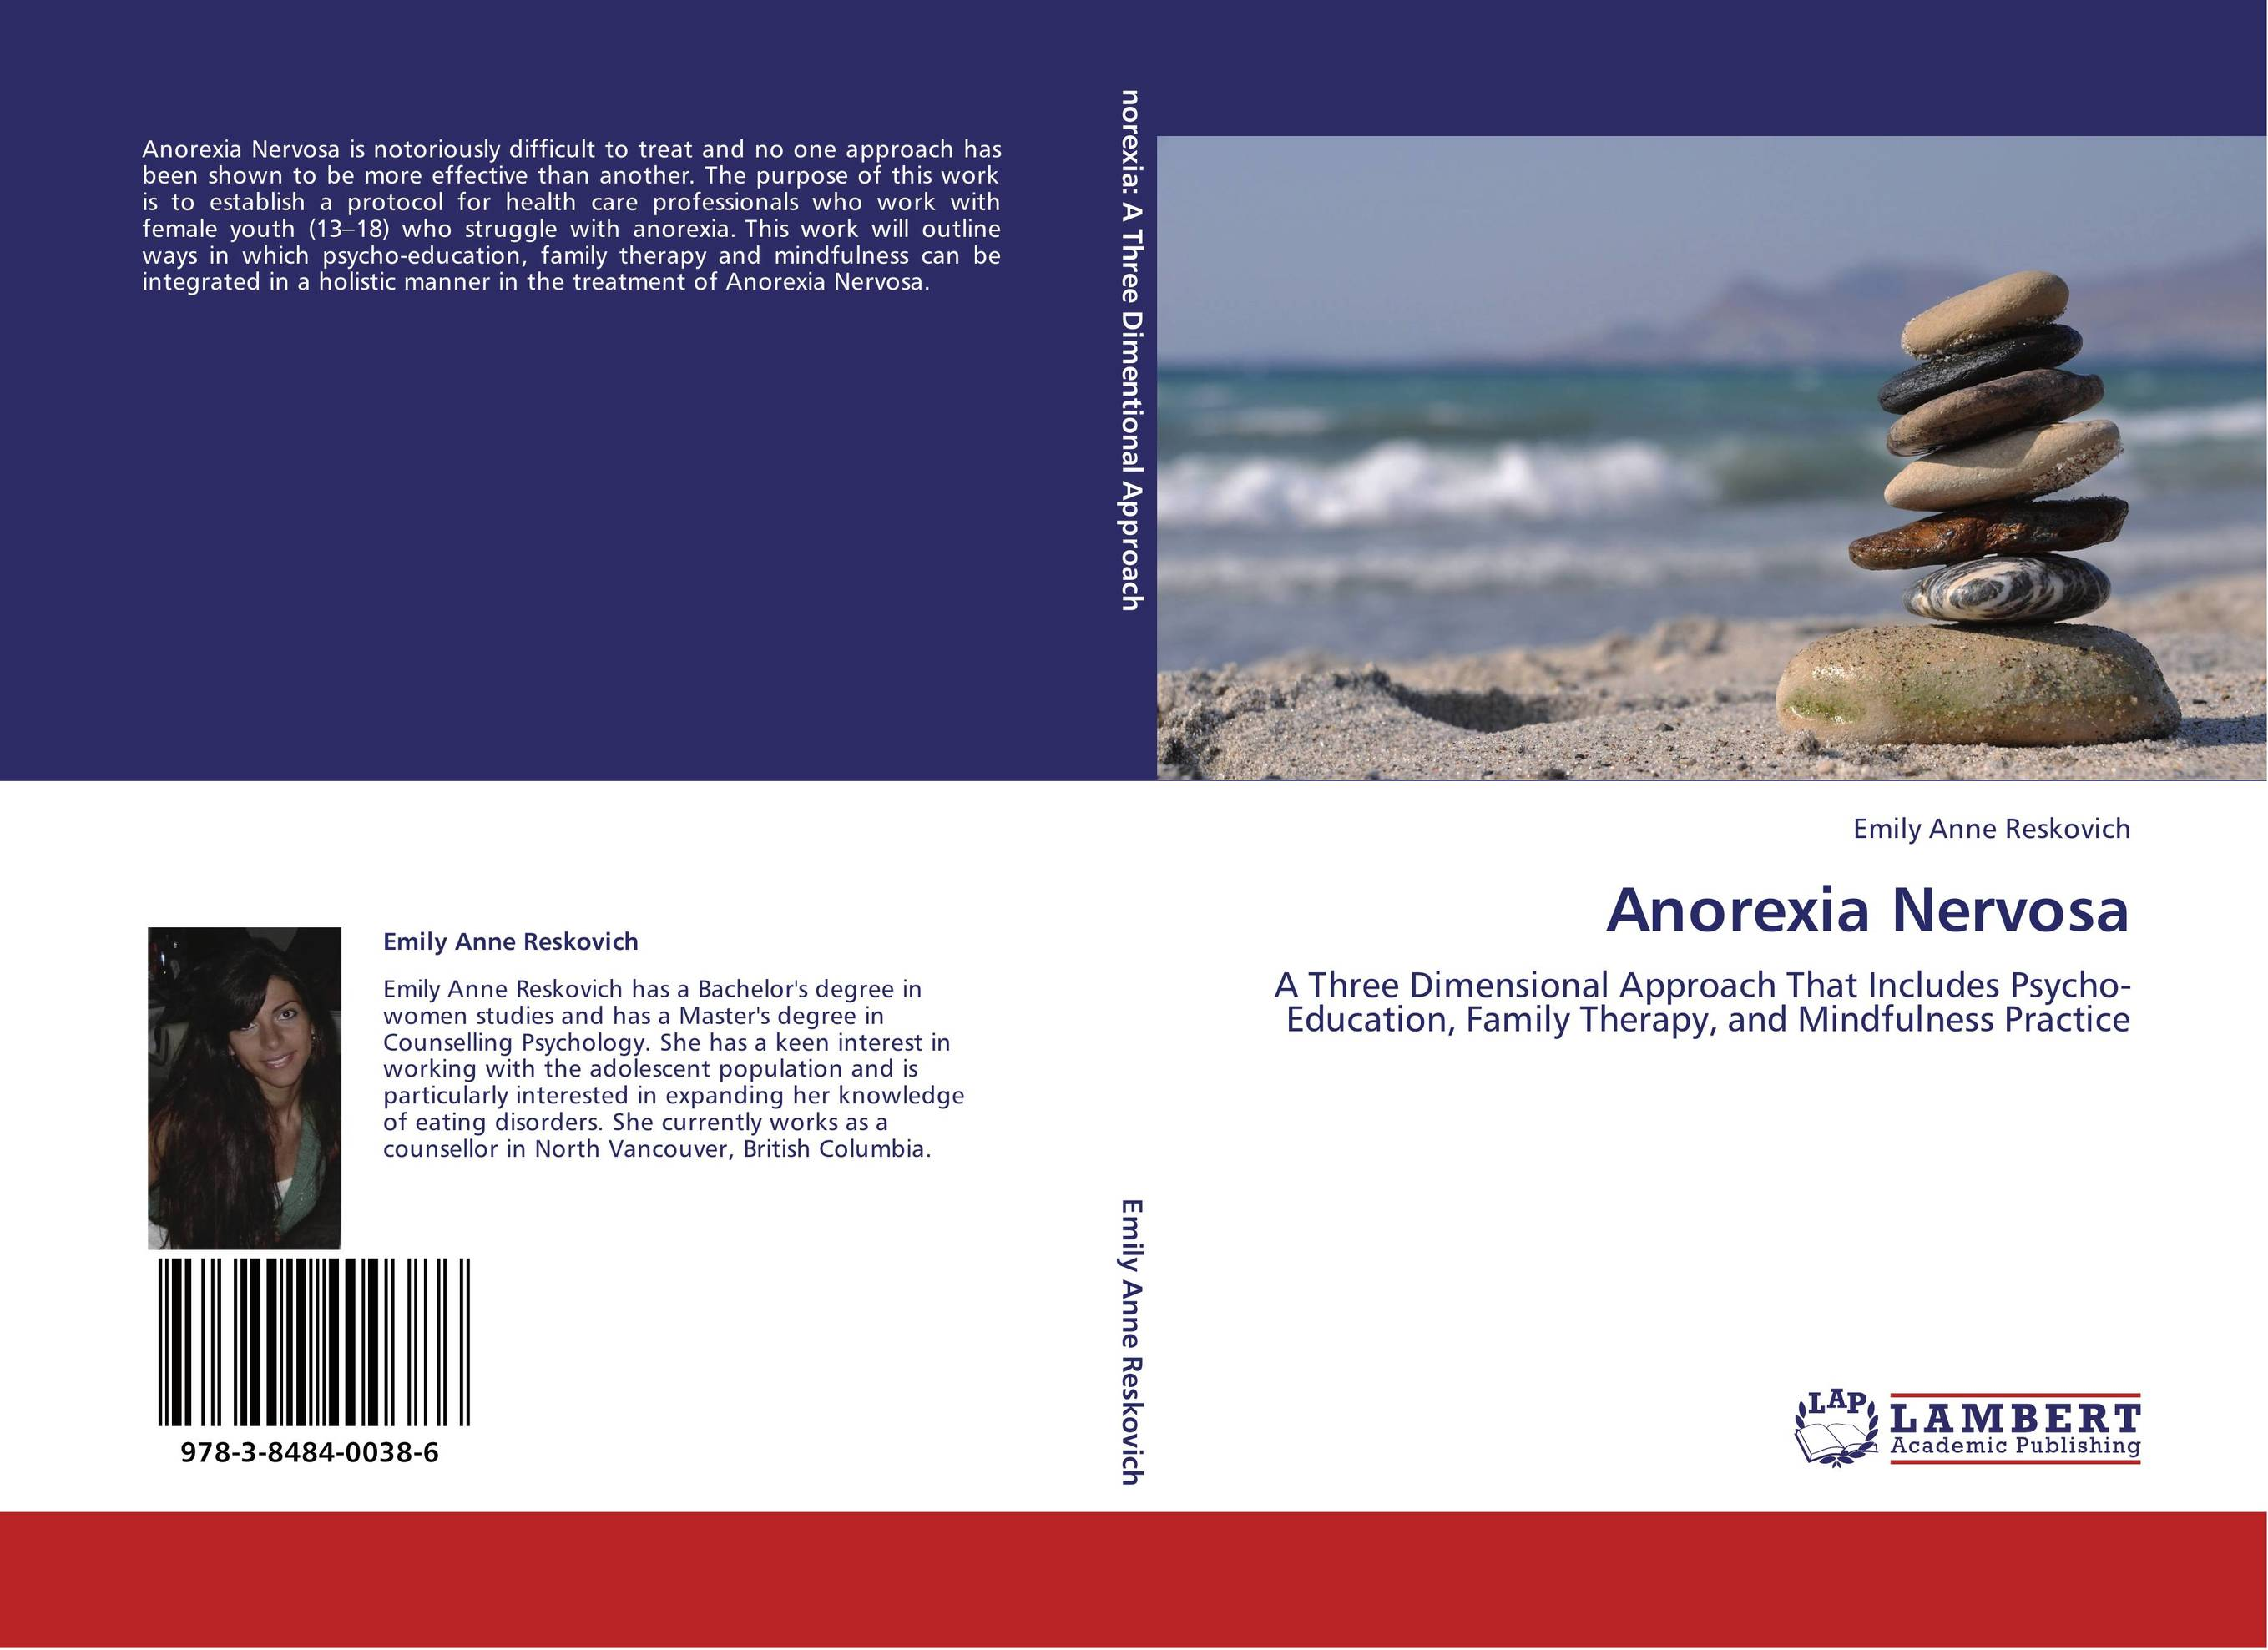 anorexia nervosa speech outline Saved essays save your essays there are three different classifications of eating disorders: anorexia nervosa, bulimia nervosa, and the atypical eating disorders.